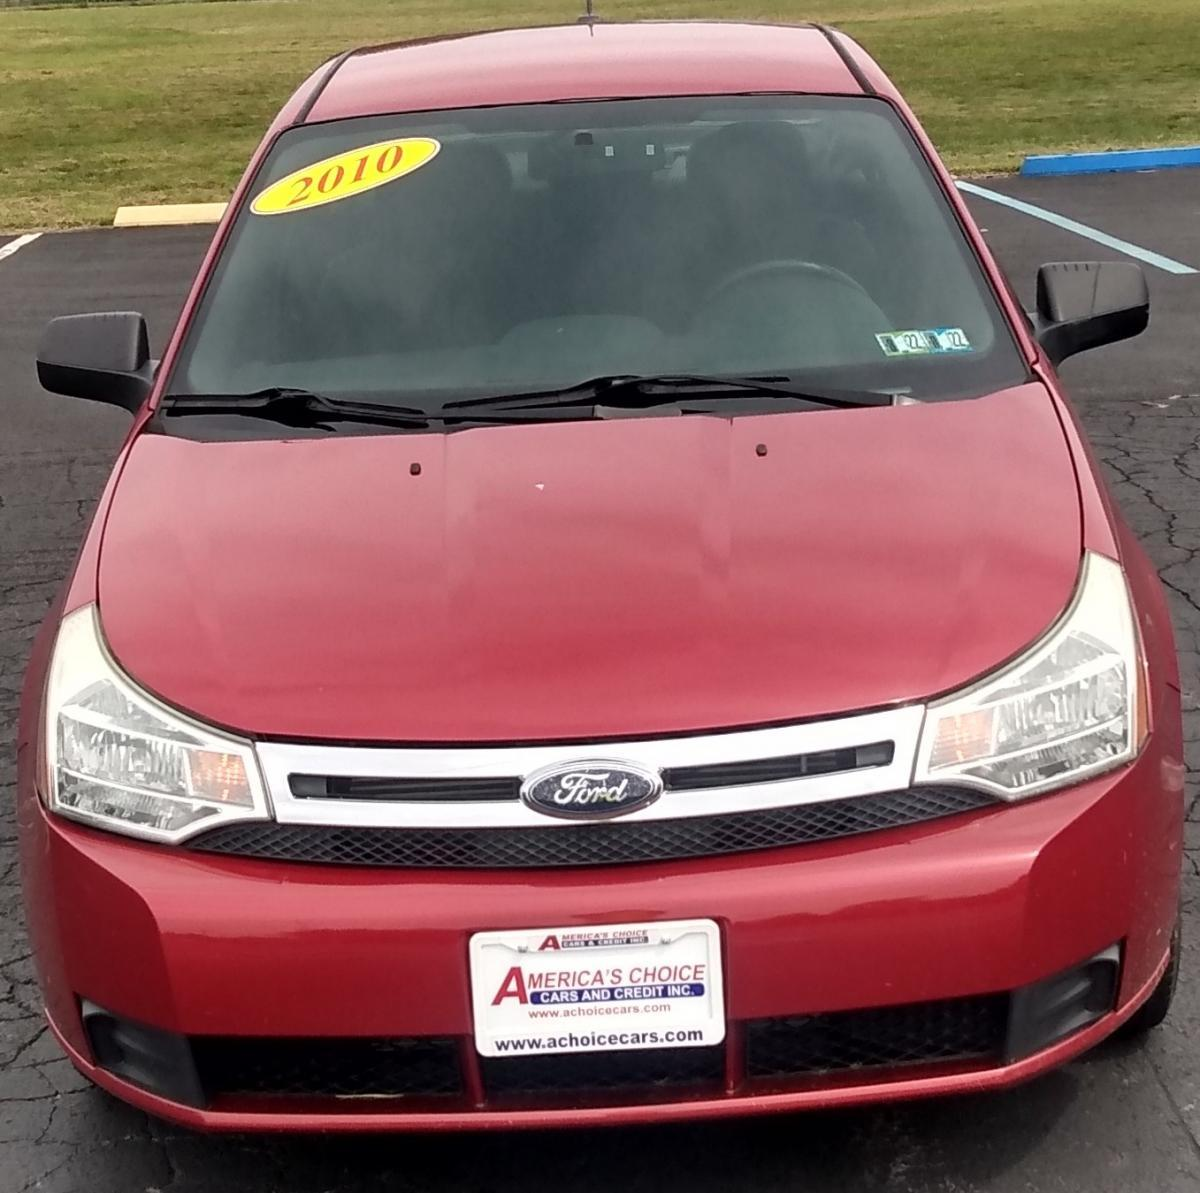 2010 Ford Focus Red